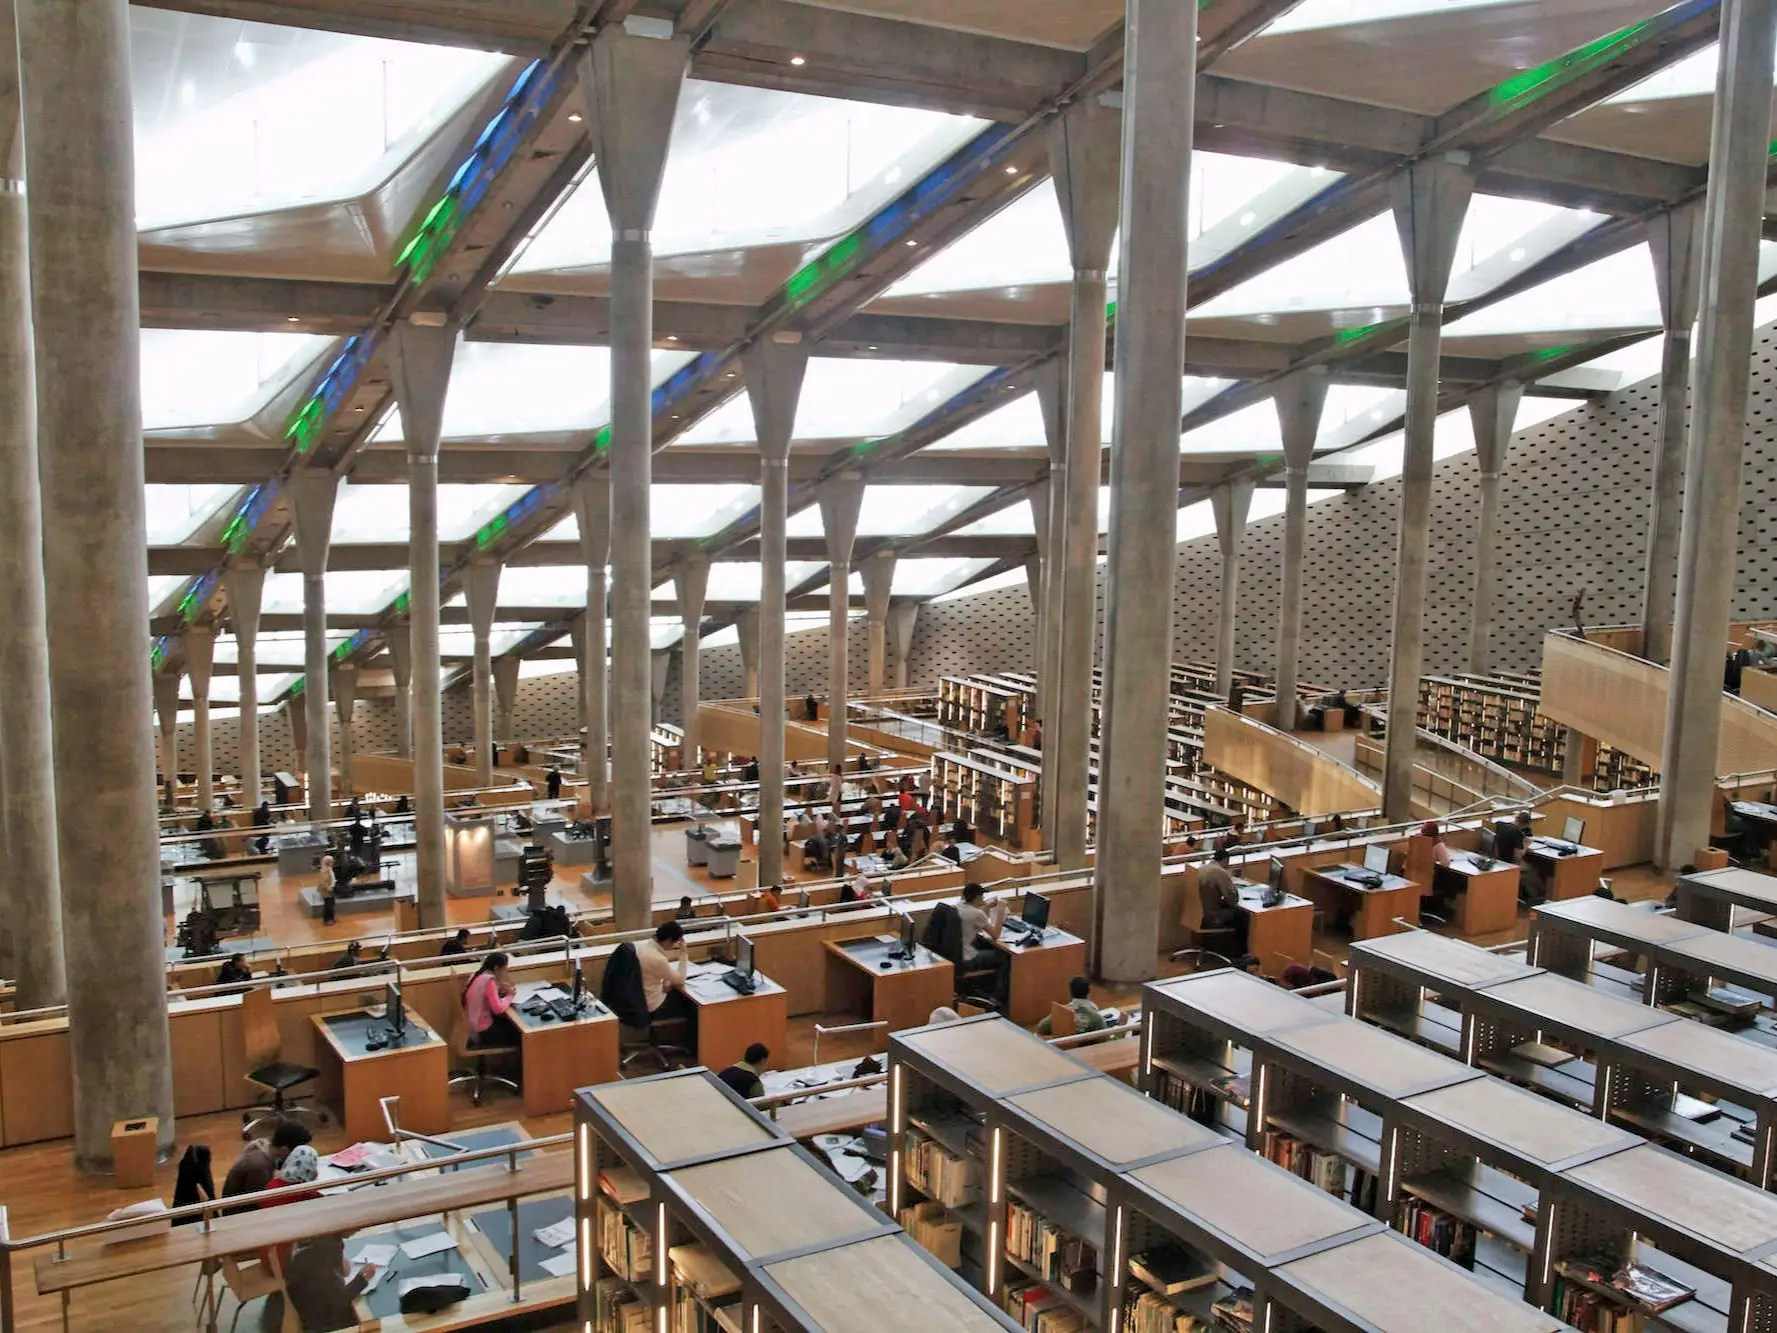 A tribute to Egypt's original library of Alexandria — which dates back to the third century BC — the current Alexandria Library was designed like a sundial. The building leans towards the Mediterranean Sea and allows for plenty of sunlight through its many skylights.